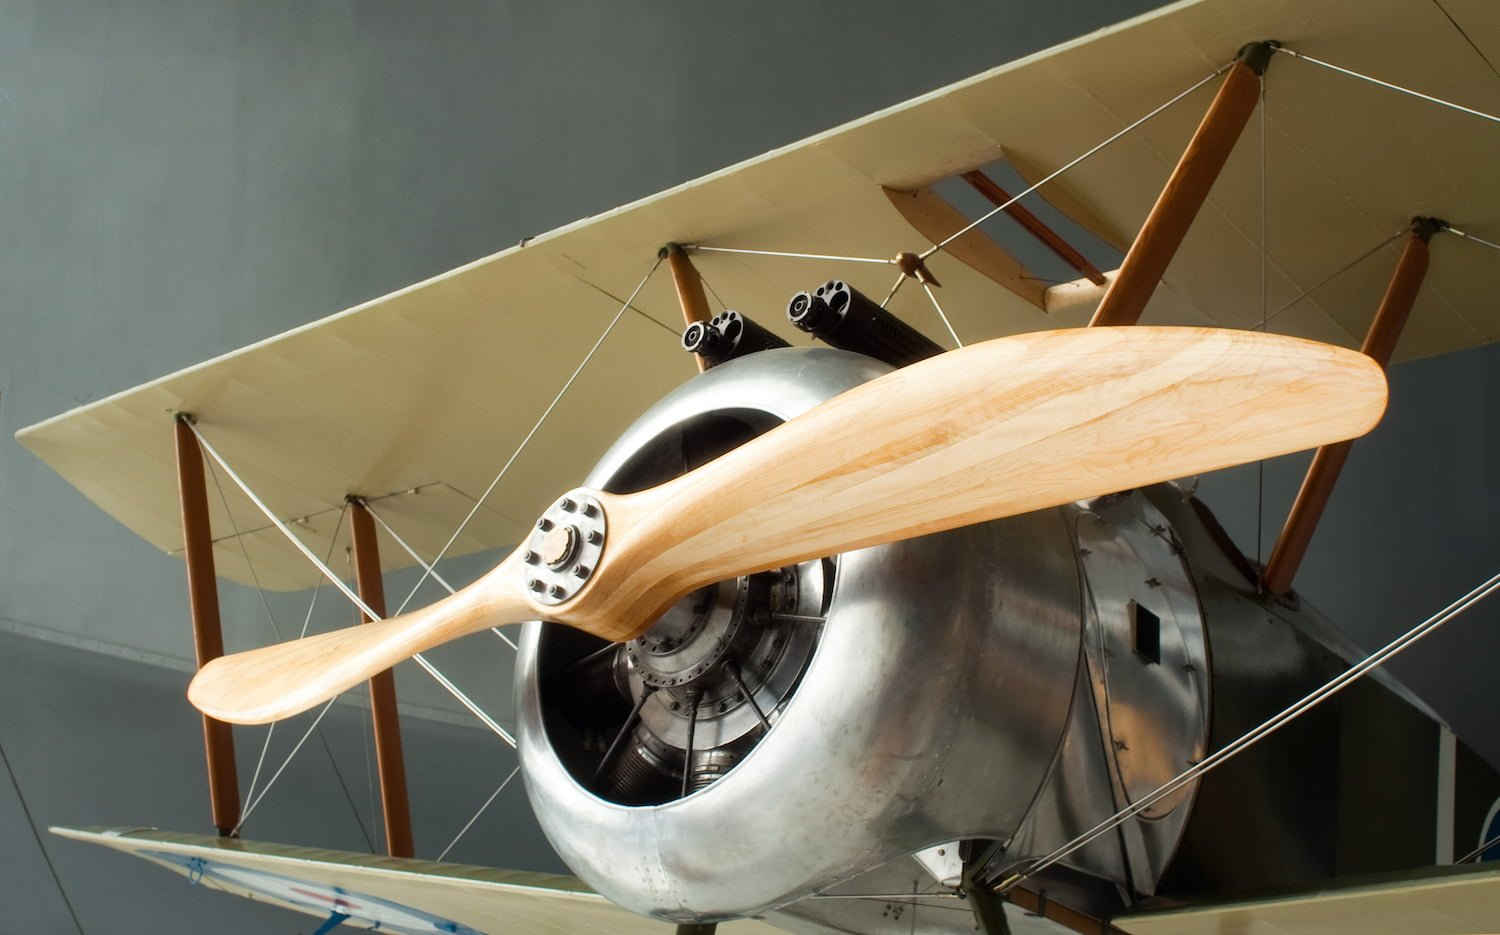 Model of classic plane in a museum.